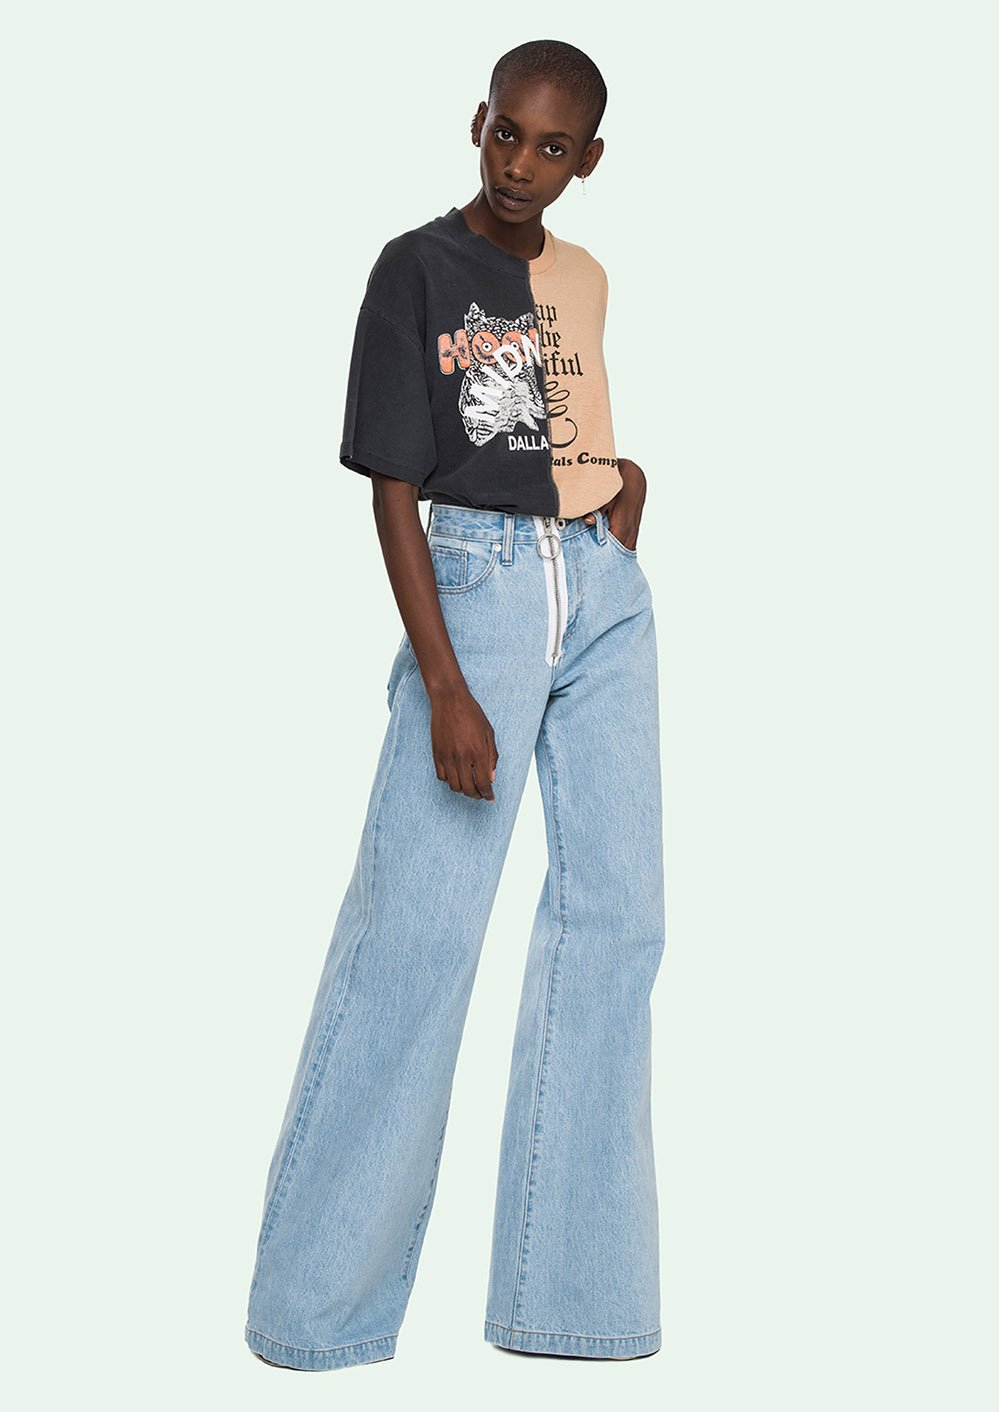 griot-mag-Off White x Levis Made & Crafted